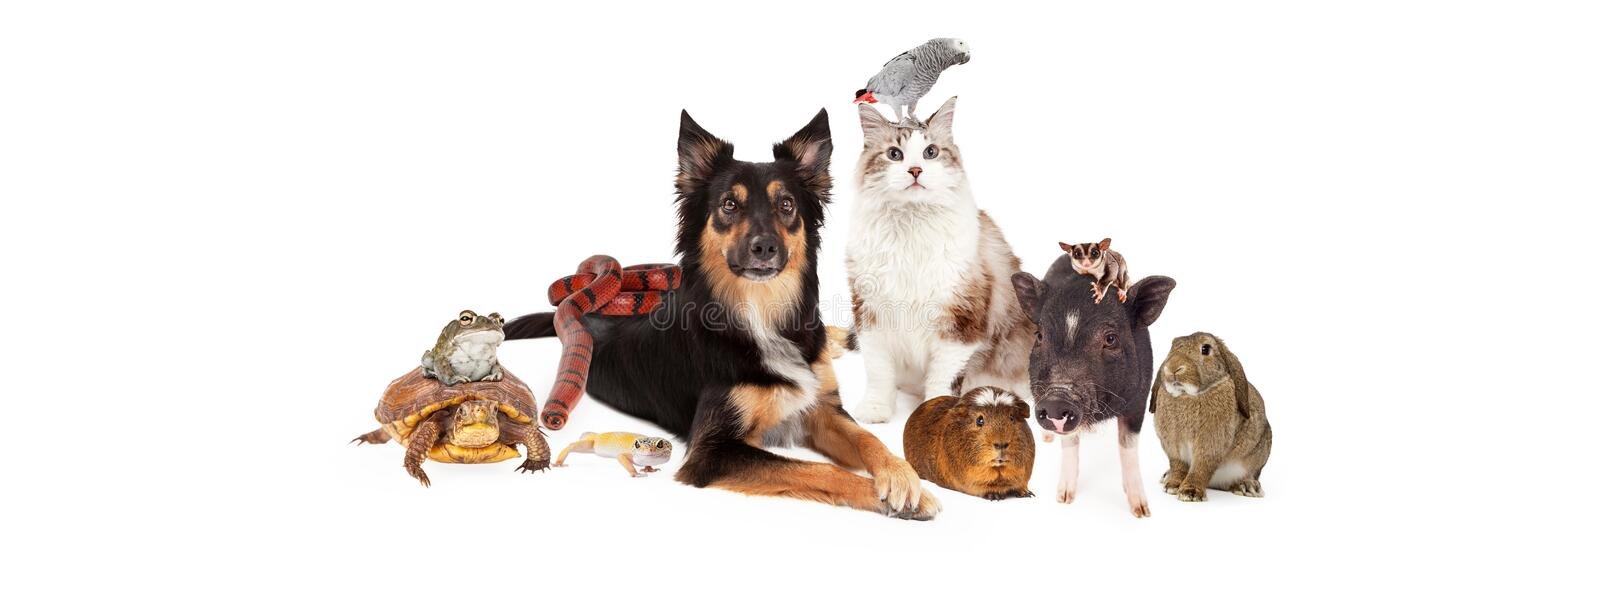 Domestic Pet Group Sized fo Social Media. A large group of domestic pets including a dog, cat, bird, guinea pig, pot-bellied pig, sugar glider, bunny, lizard stock images